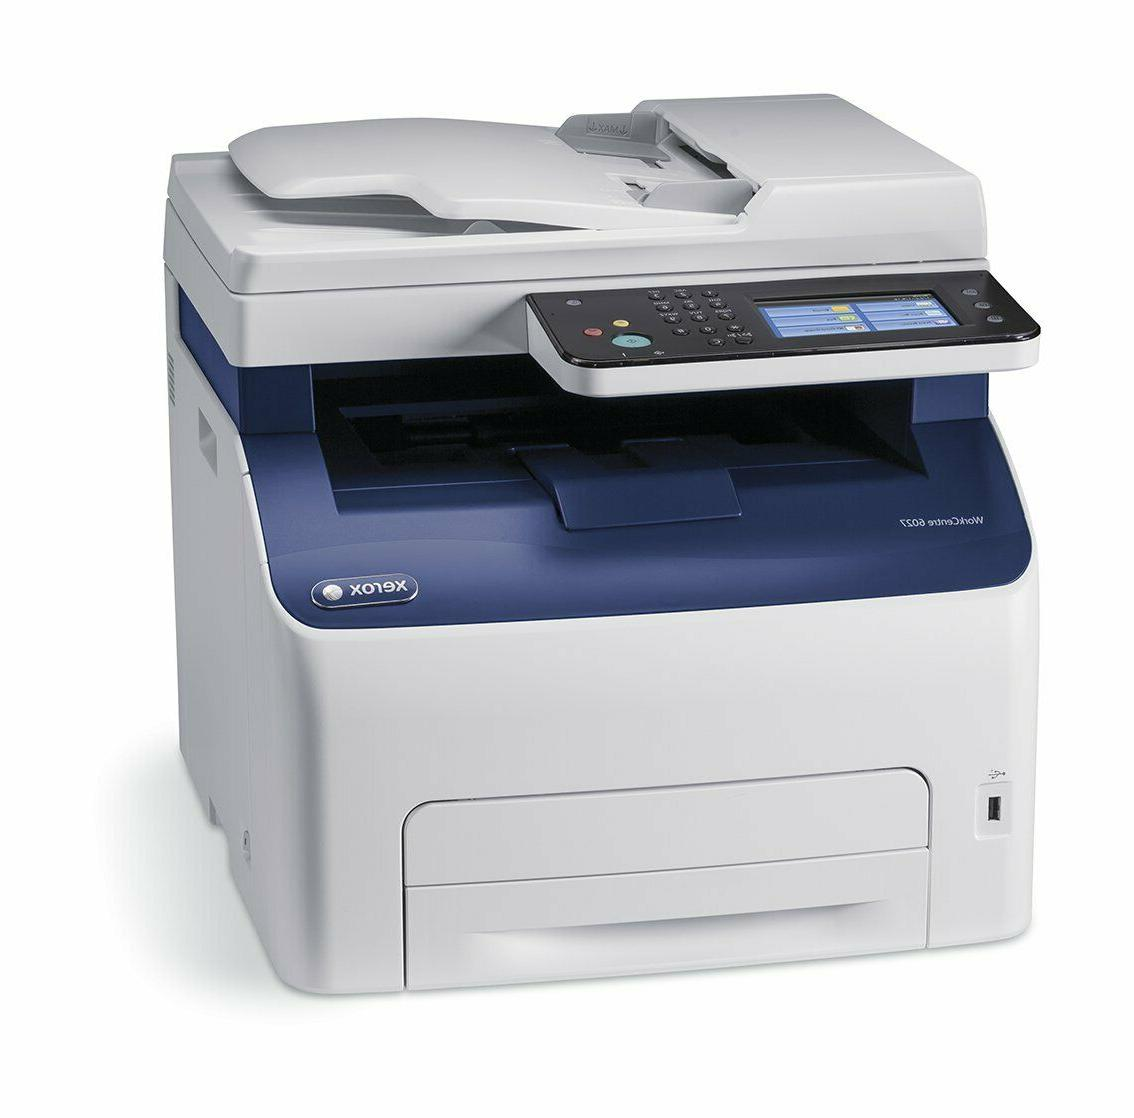 Xerox Printer Printerguide